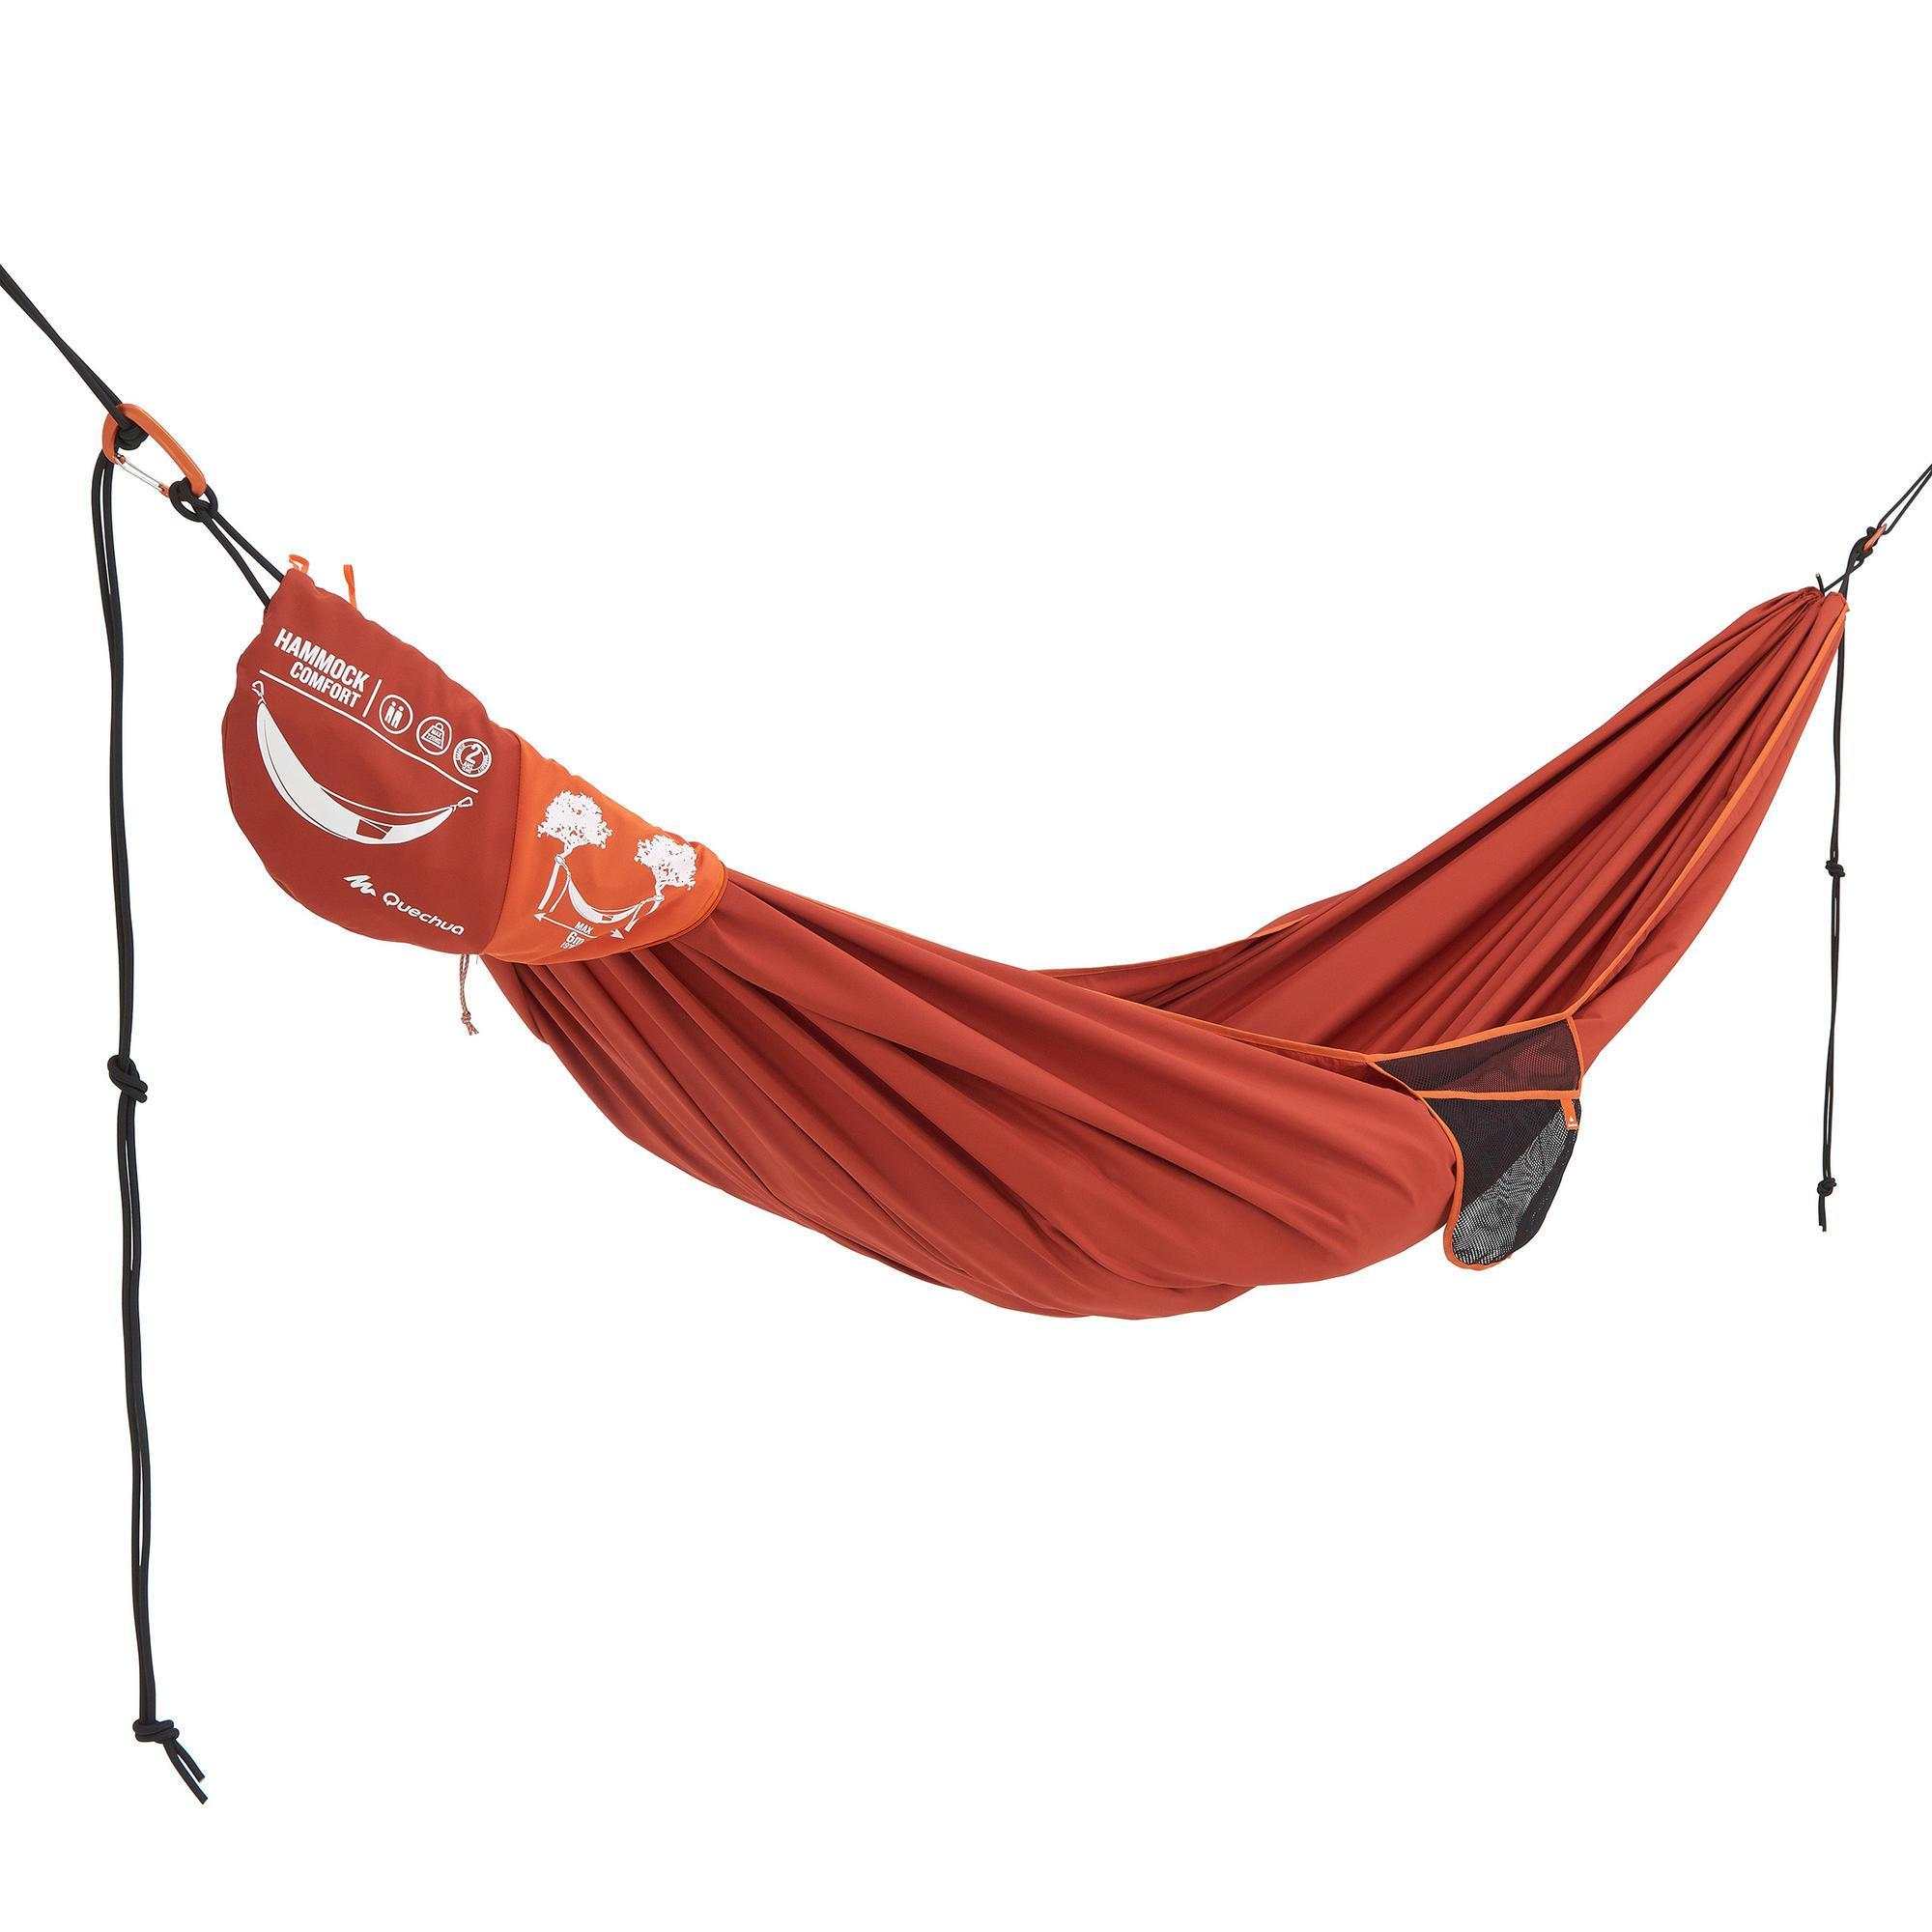 products picture mojotrend hammocks travel user parachute portable original people hammock color